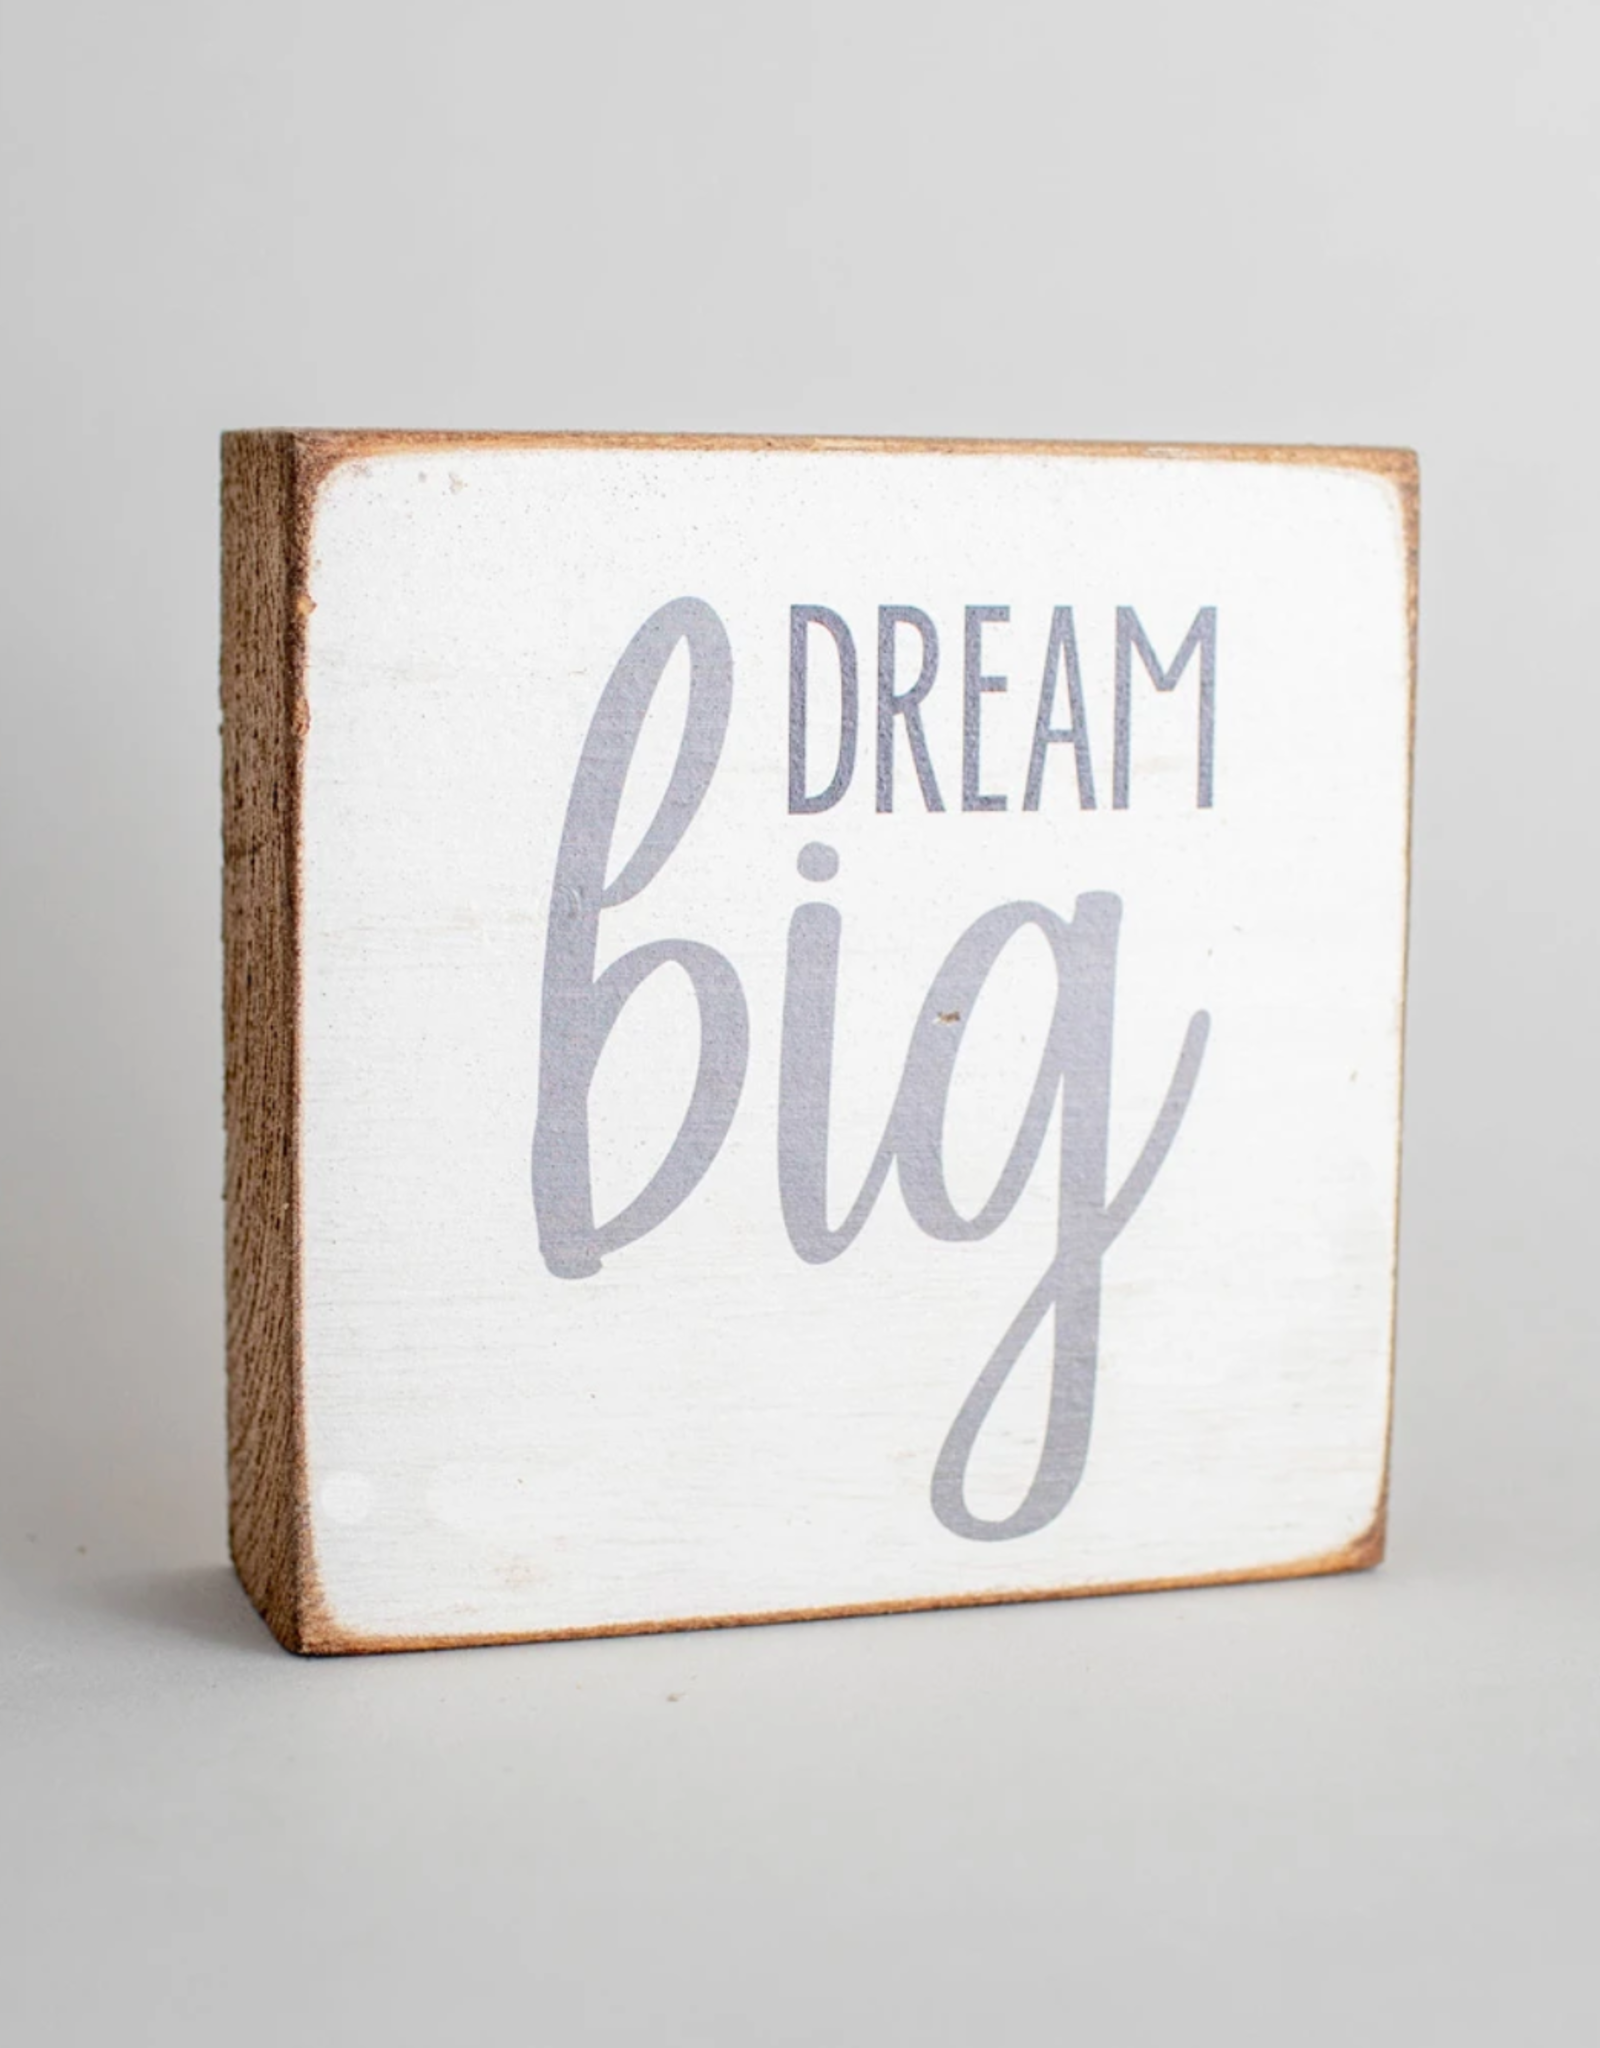 Rustic Marlin Rustic Marlin - Dream Big 6x6 Block